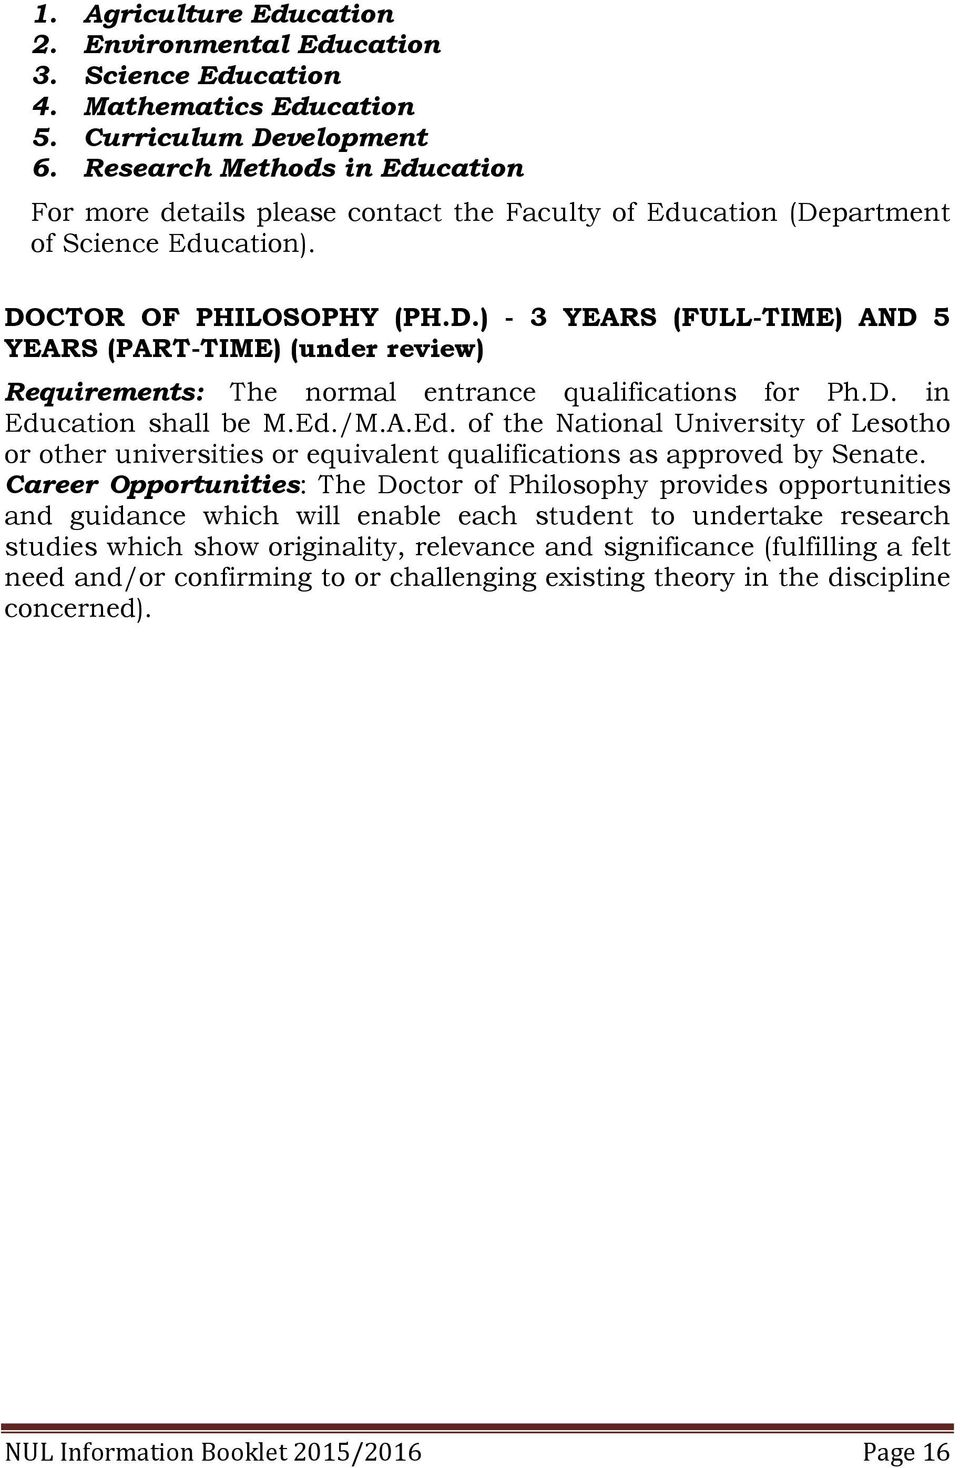 partment of Science Education). DOCTOR OF PHILOSOPHY (PH.D.) - 3 YEARS (FULL-TIME) AND 5 YEARS (PART-TIME) (under review) Requirements: The normal entrance qualifications for Ph.D. in Education shall be M.